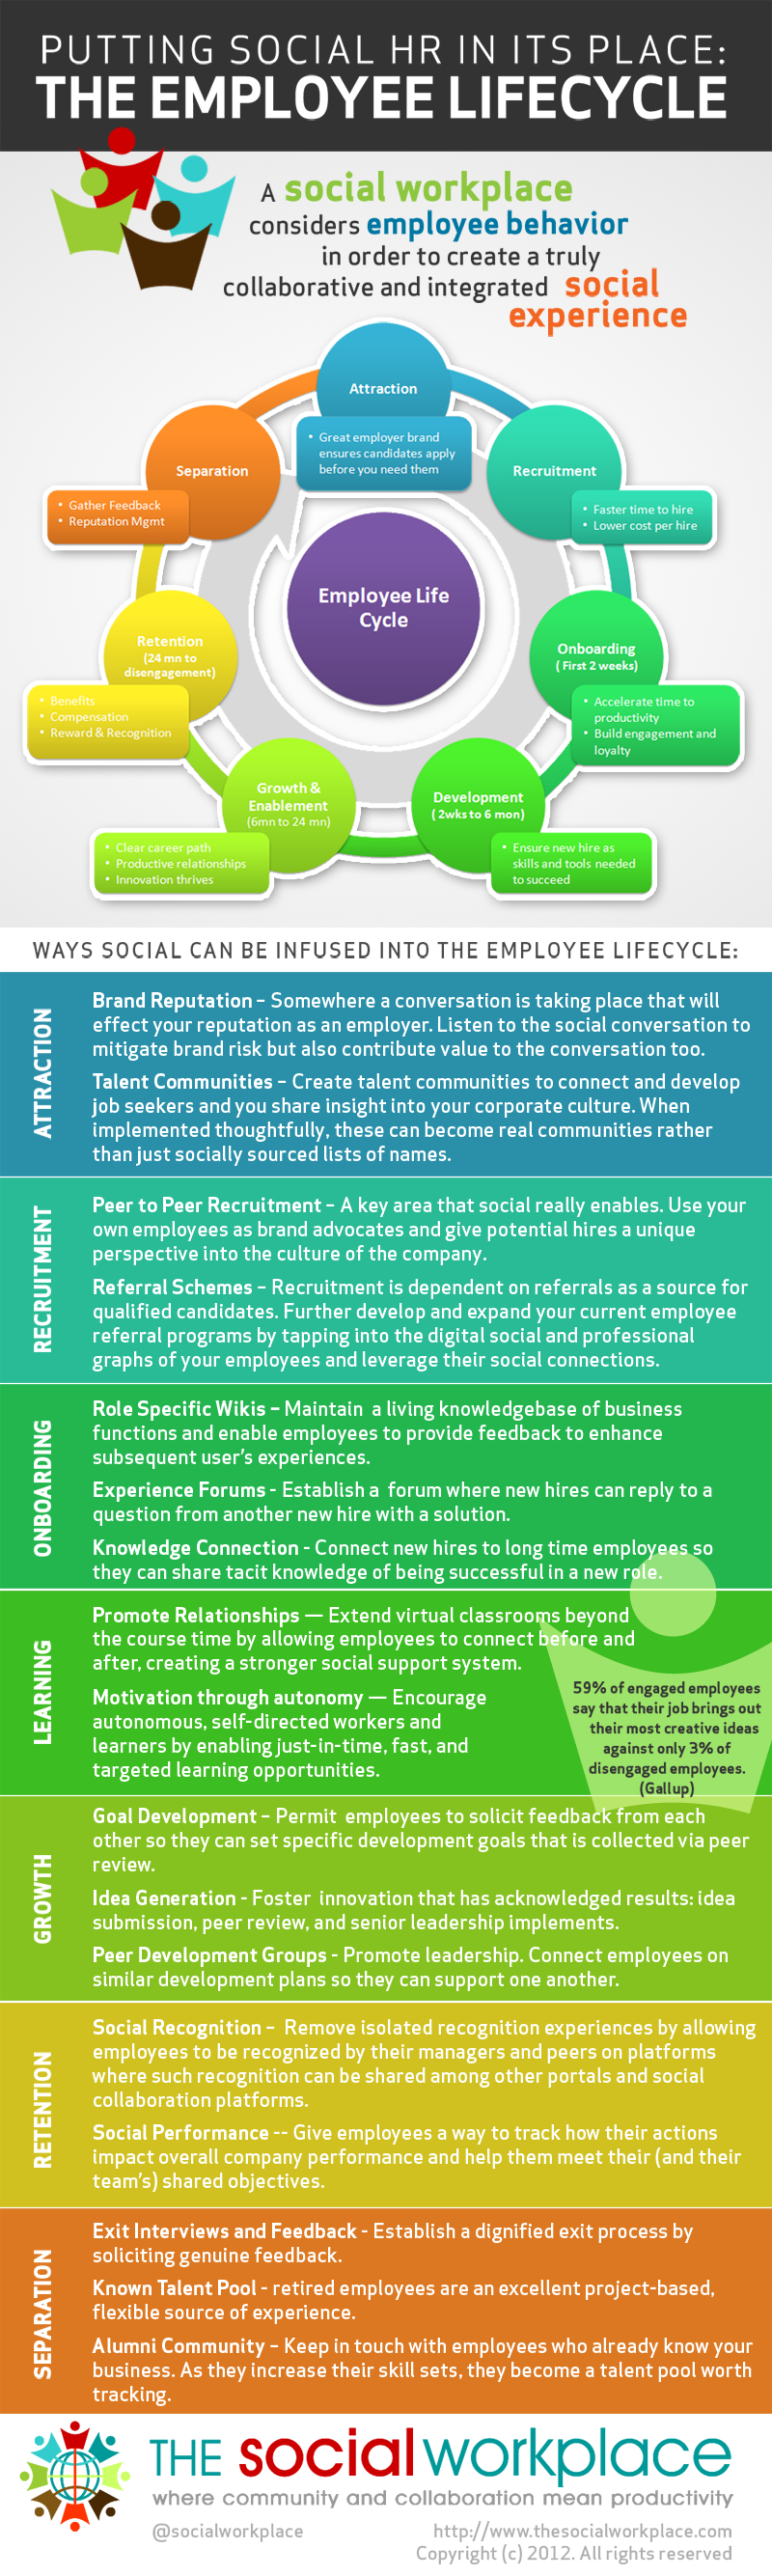 Social HR and the Employee Lifecycle by The Social Workplace 800 The Employee Lifecycle & Social HR